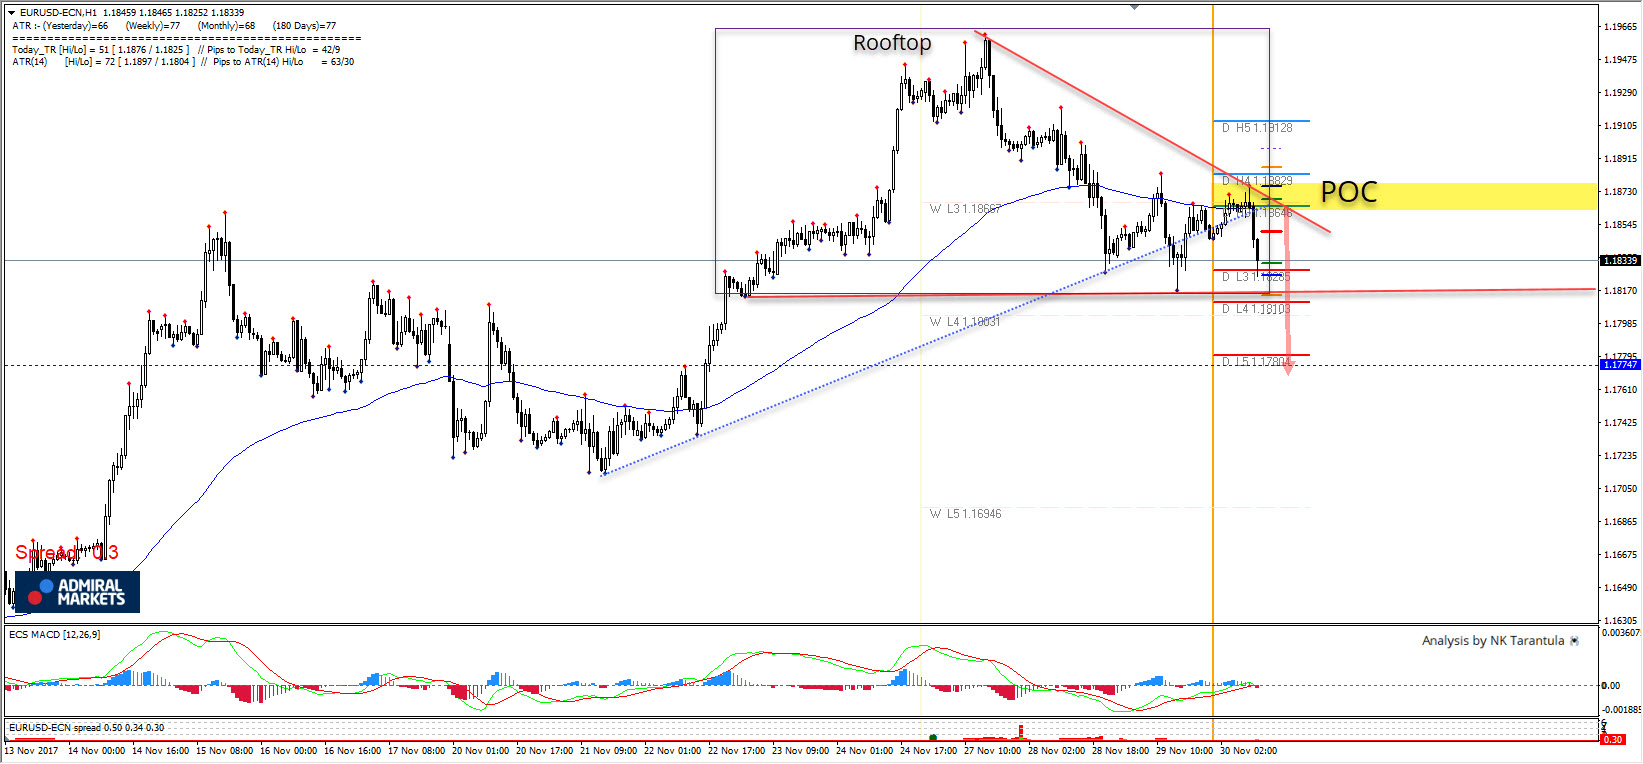 EUR/USD Continuation of the Rooftop Pattern Below 1.1800